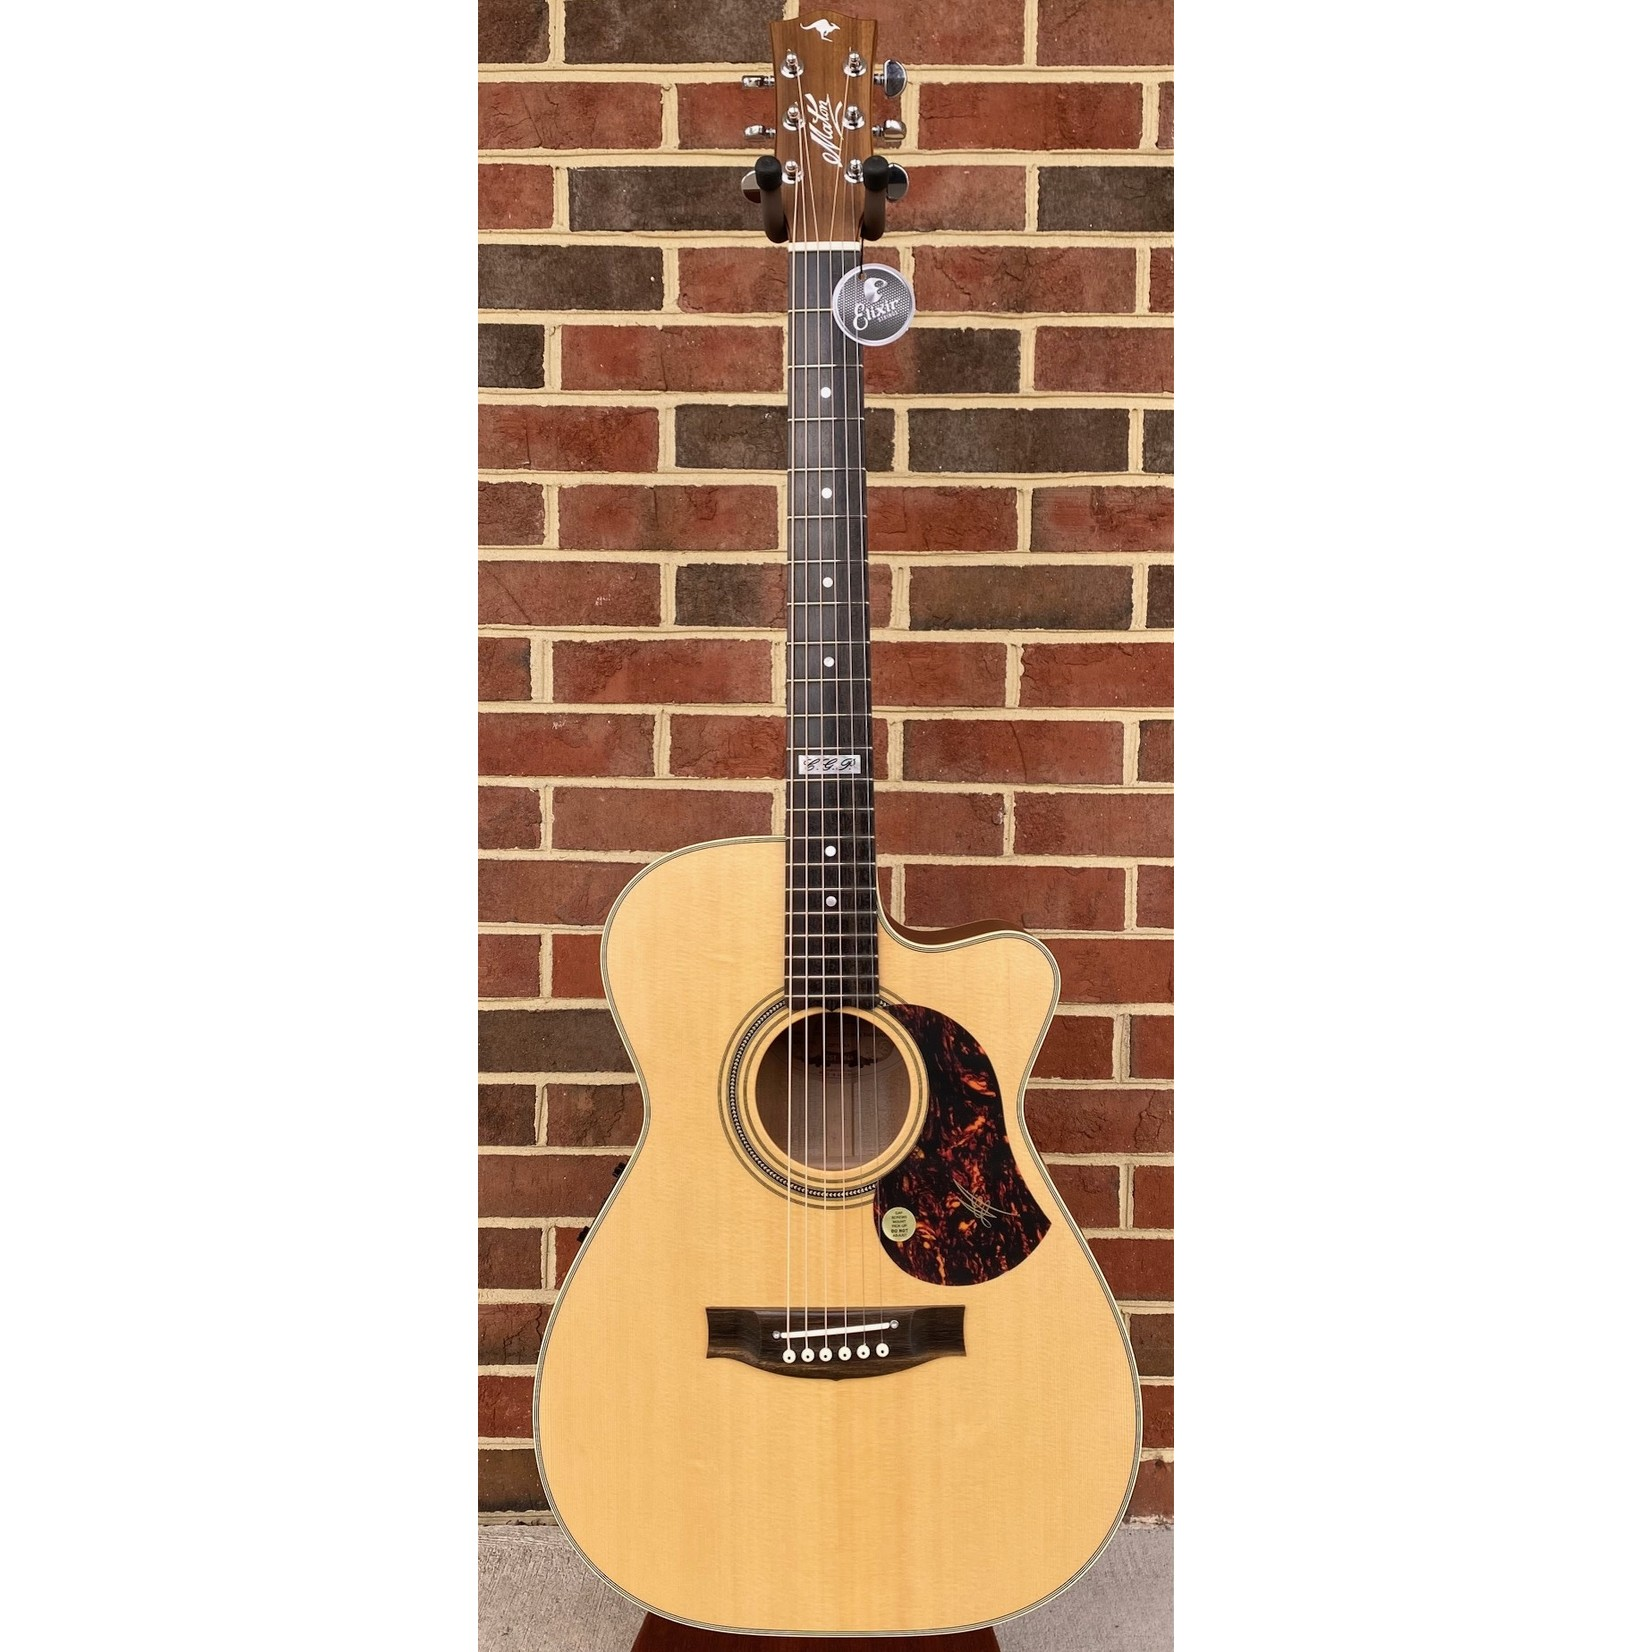 """Maton Maton EBG808TEC, Cutaway, Solid """"AAA"""" Spruce Top, Solid Queensland Maple Back & Sides, AP5 Pro Pickup, Hardshell Case Included"""